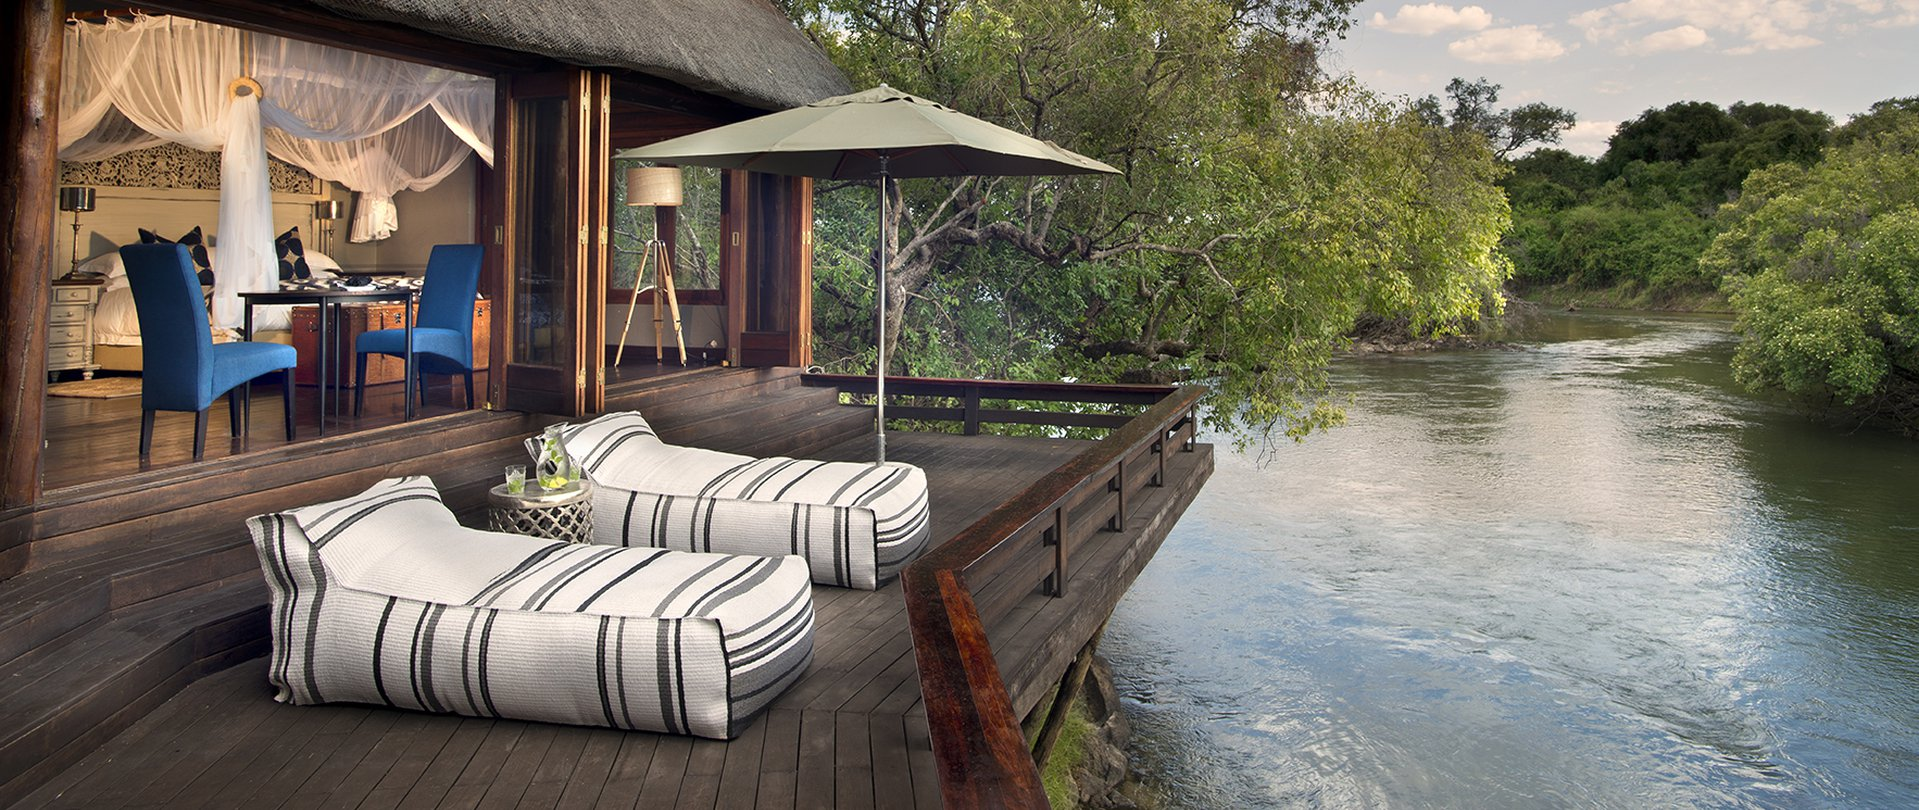 Luxury villa at Royal Chundu in Zambia